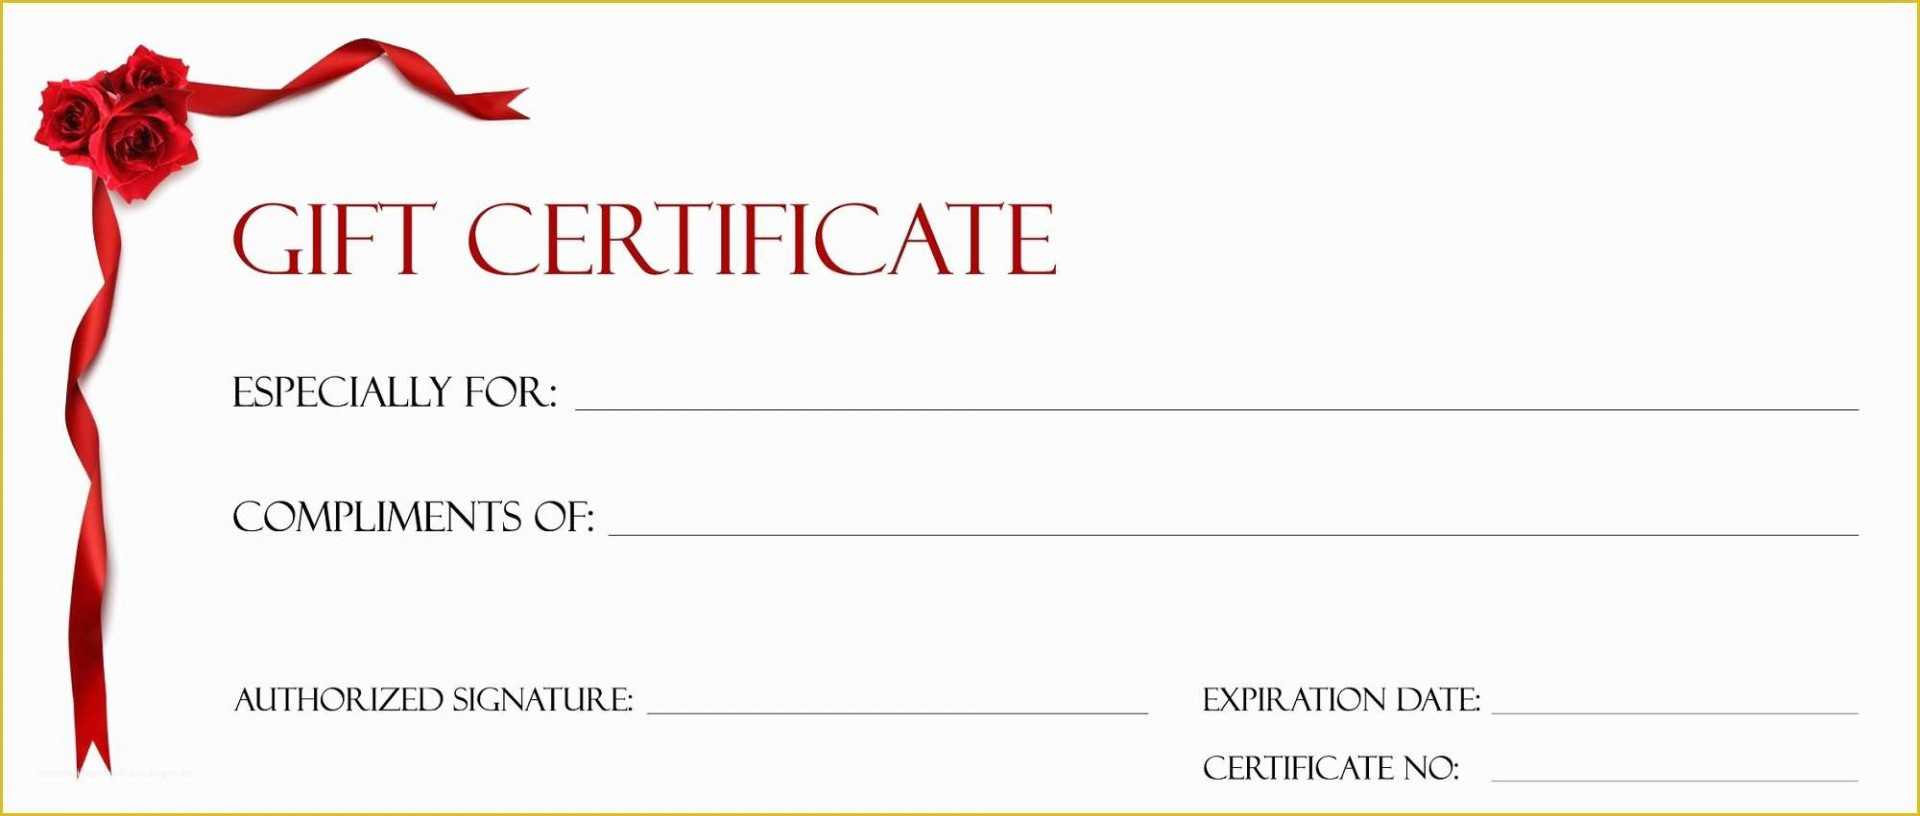 037 Free Download Gift Certificate Template Word Of Voucher Within Microsoft Gift Certificate Template Free Word